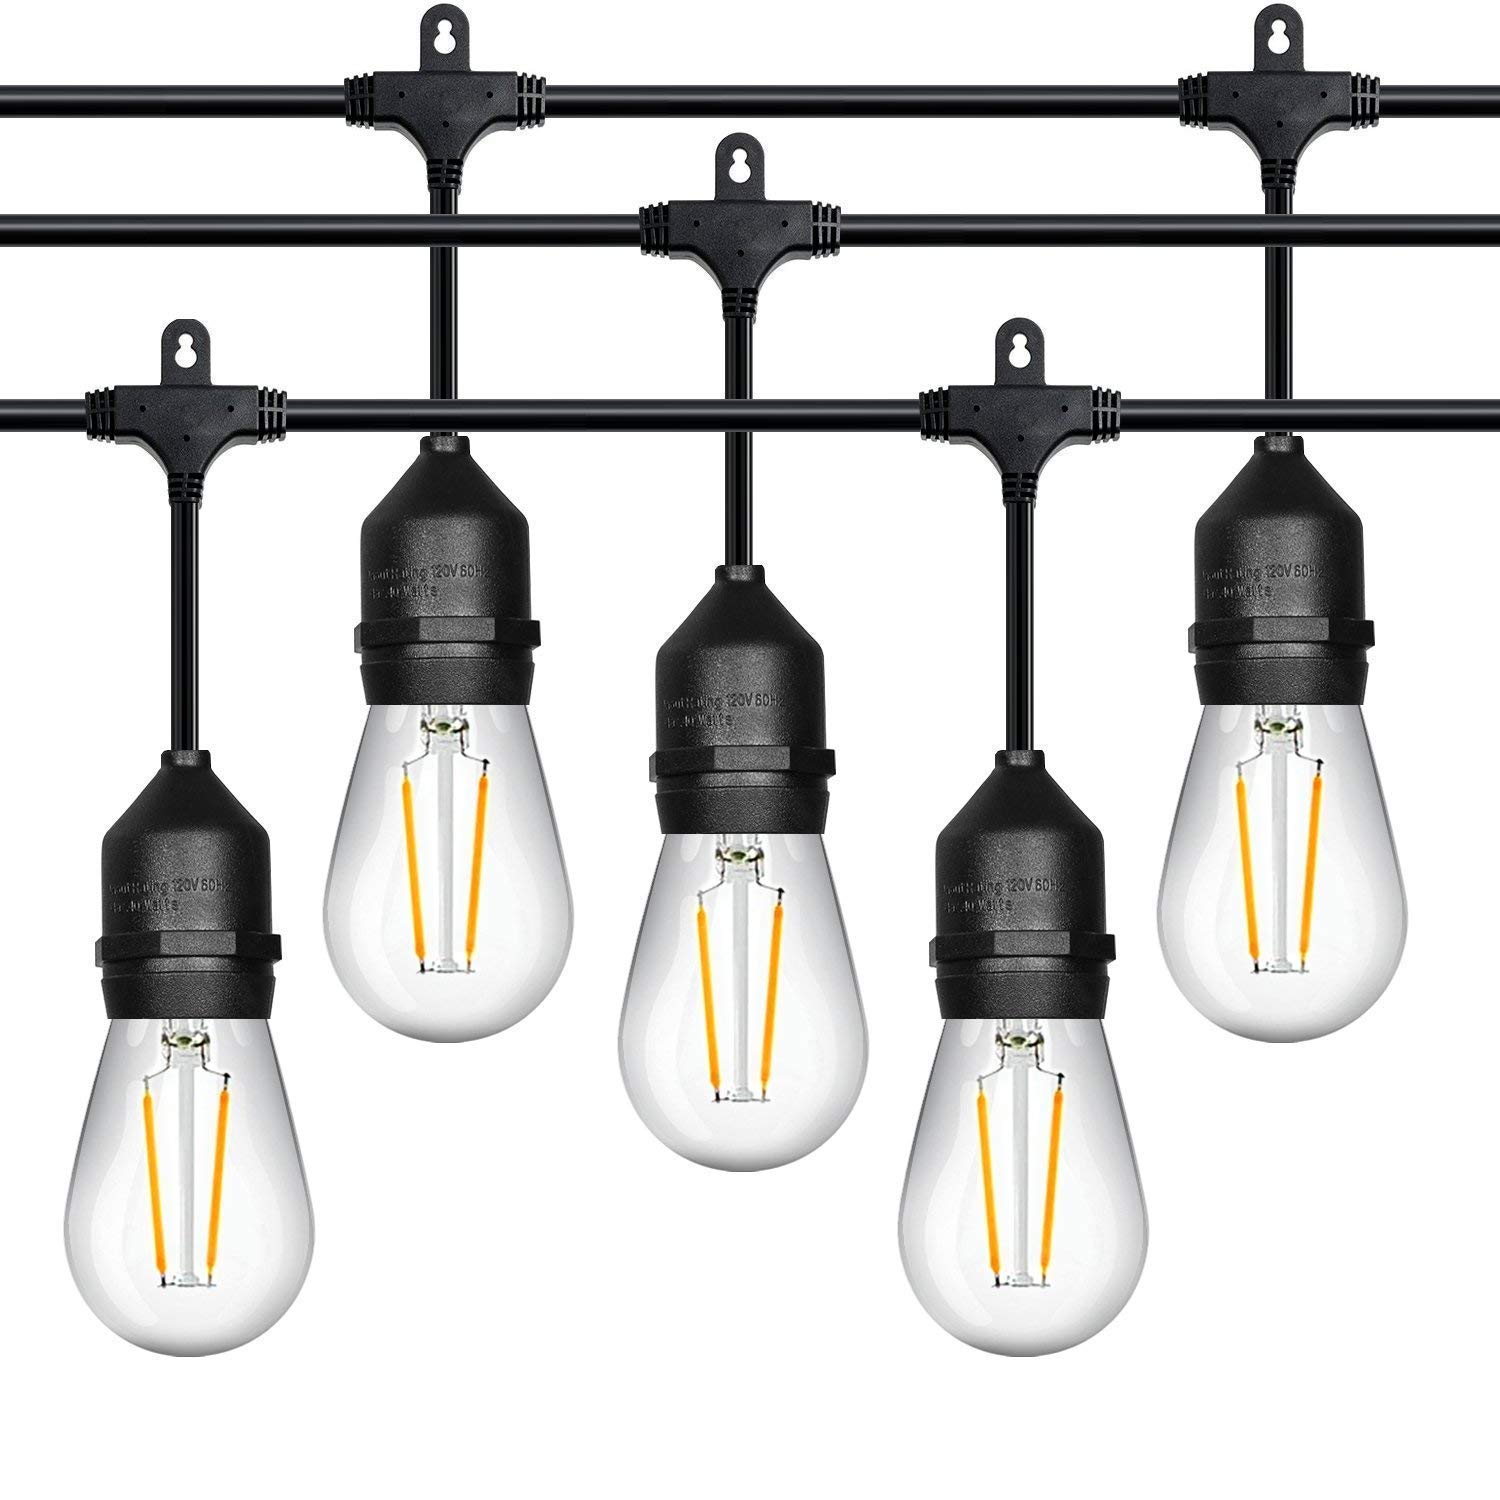 52ft LED Outdoor String Lights Commercial Grade Weatherproof - 20pack 2W Incandescent Bulbs Included - ETL Listed Heavy Duty - 18 Hanging Sockets - Perfect Patio Lights Bistro Market Cafe Lights by FrenchMay (Image #1)